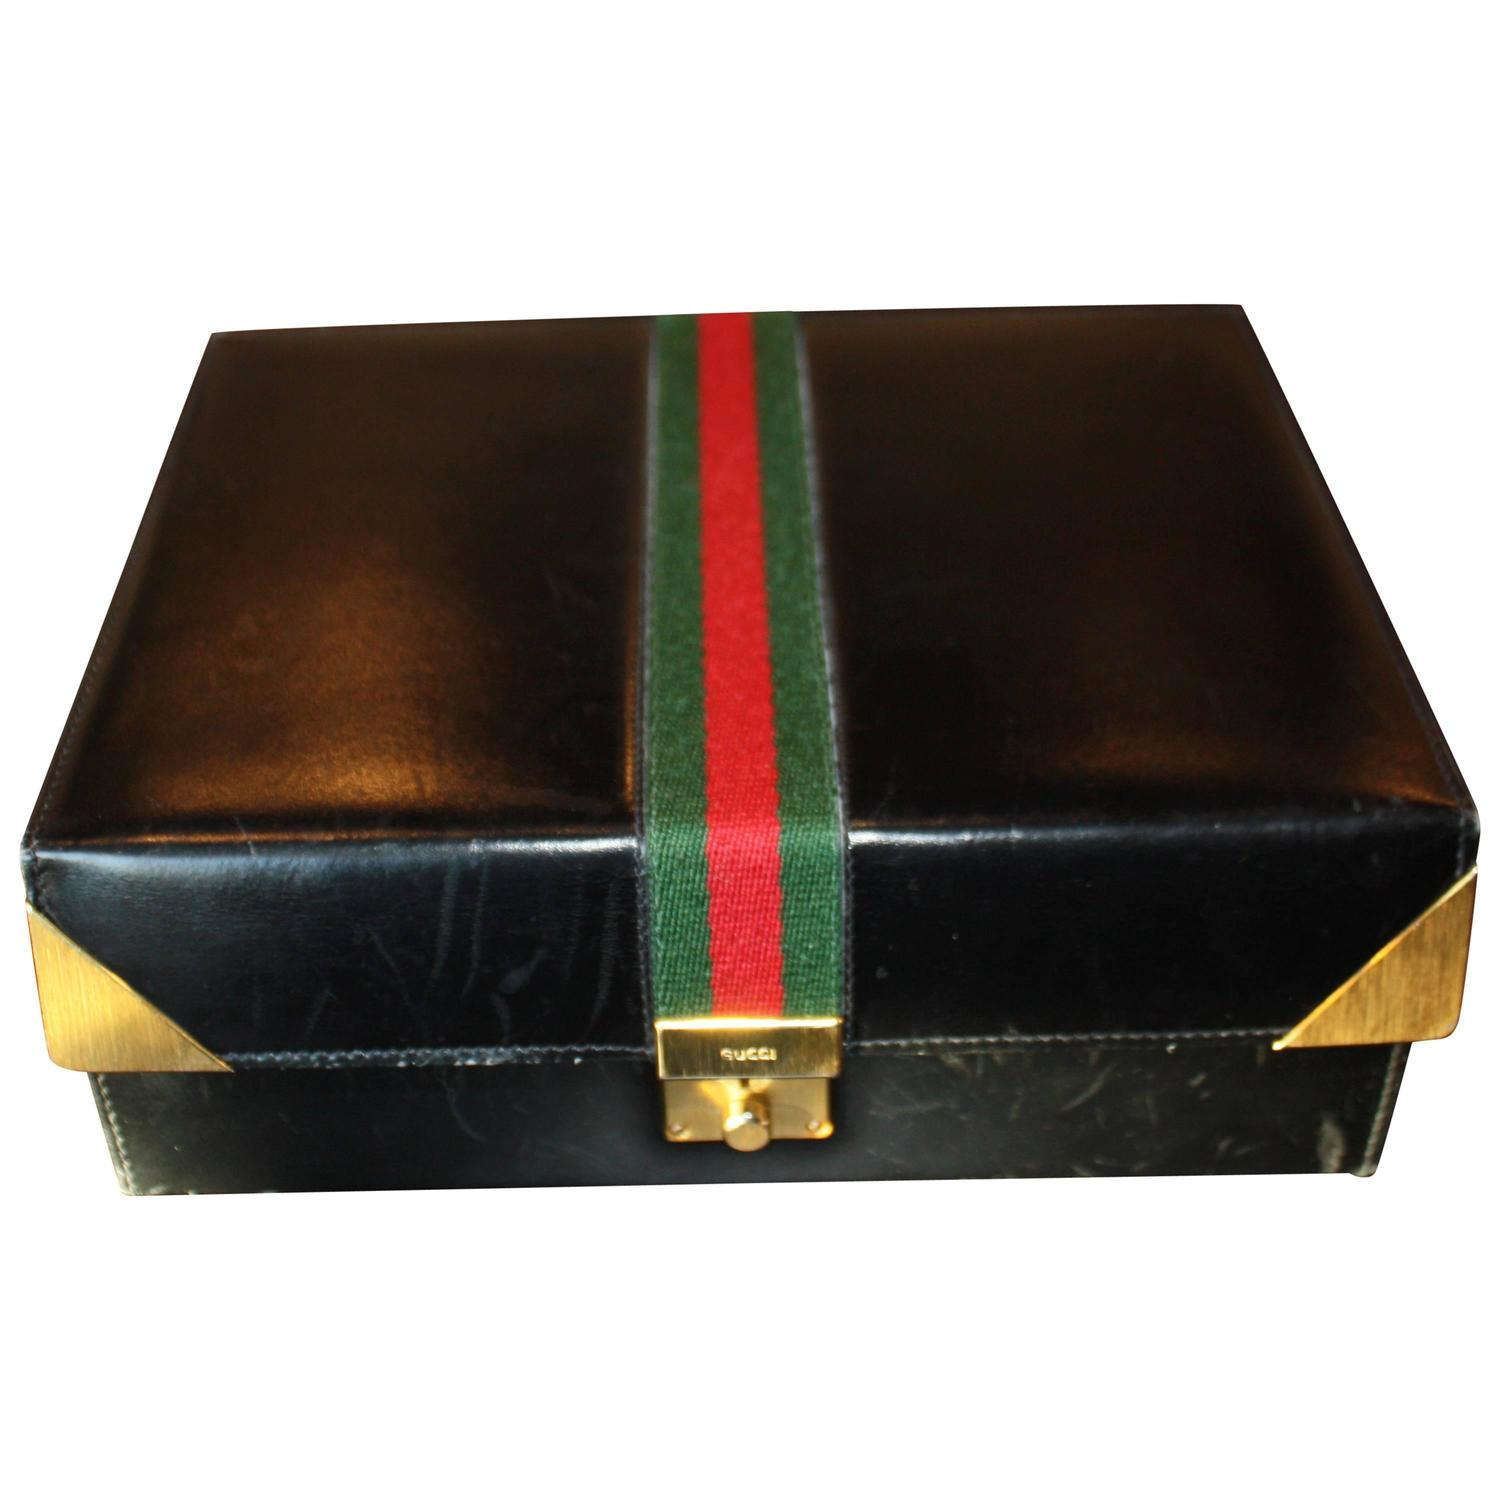 Gucci Leather Jewelry Box 1970s at 1stdibs